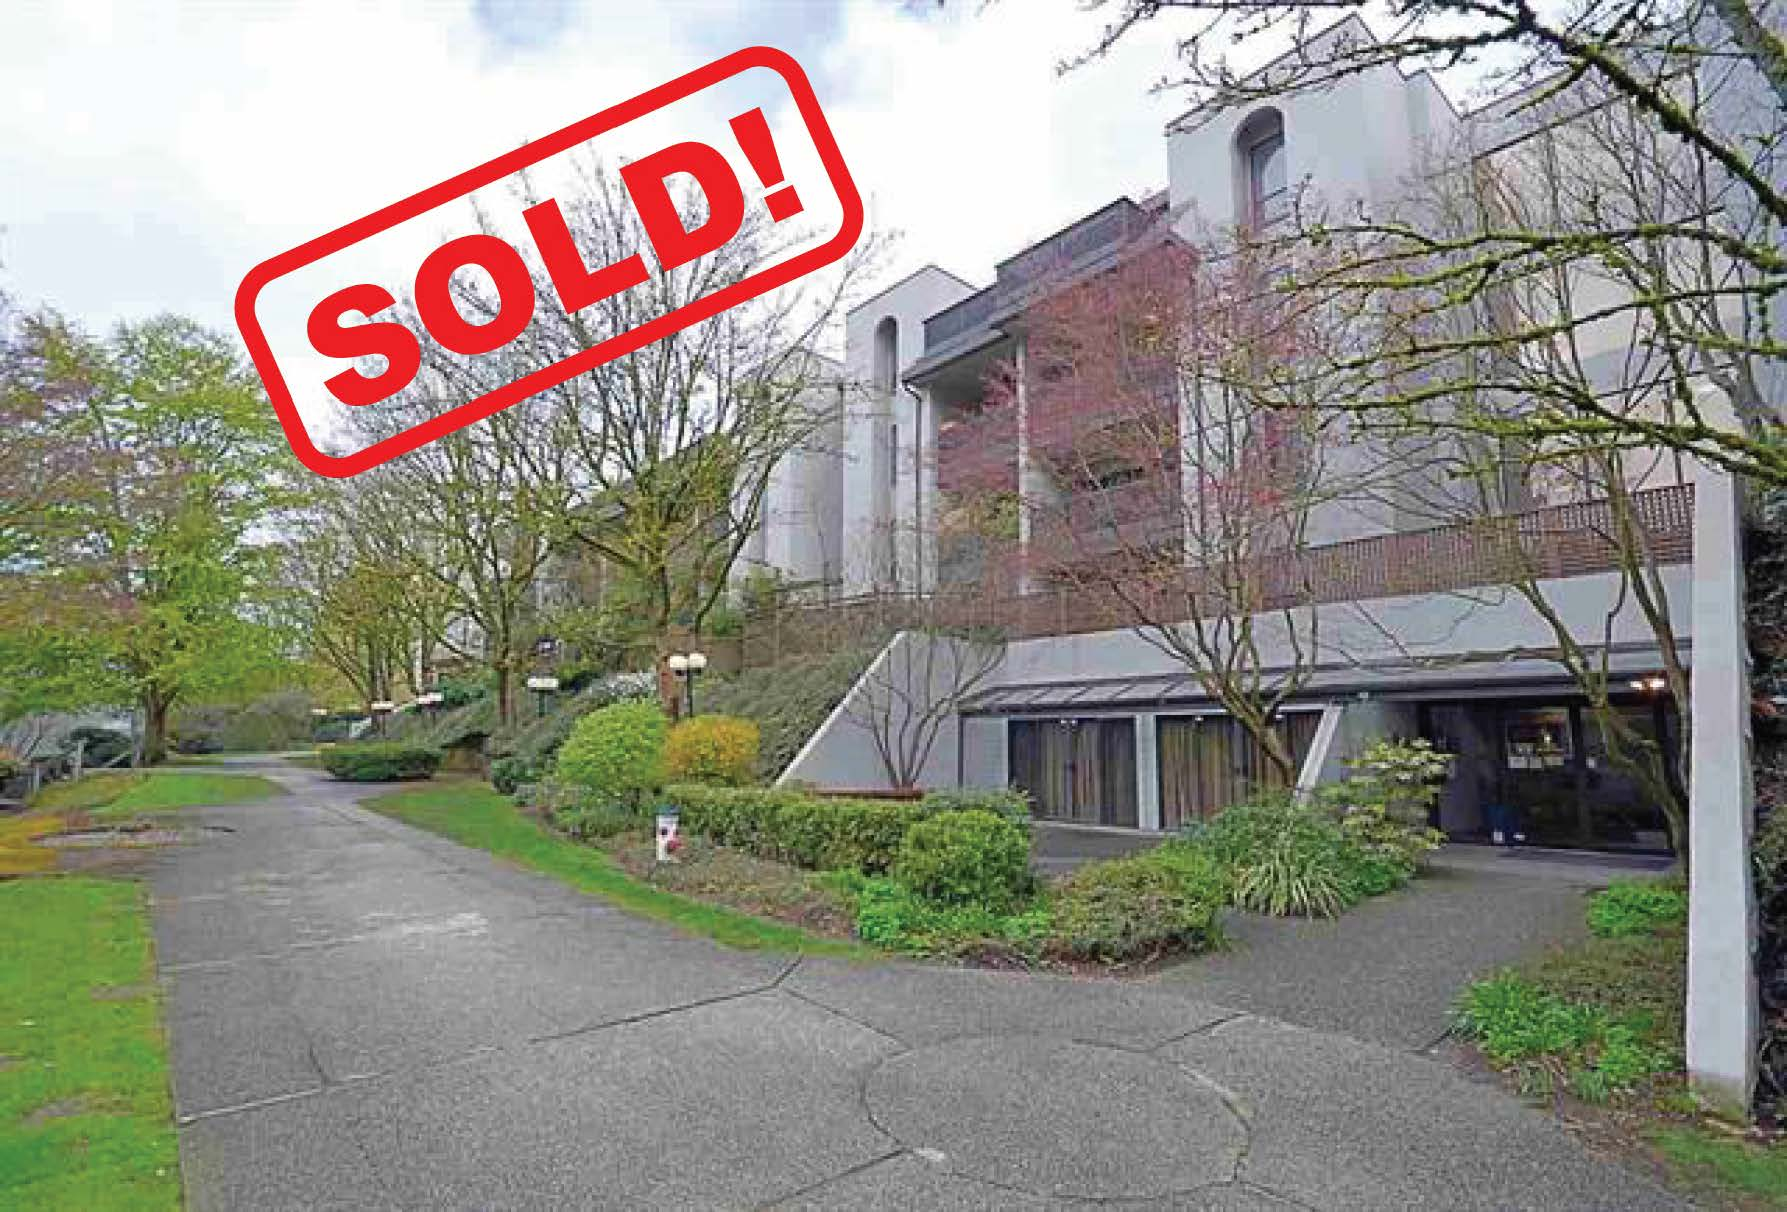 403-1945 Woodway Place   sold for: $333,000  1 BED | 1 BATH | 691 SF